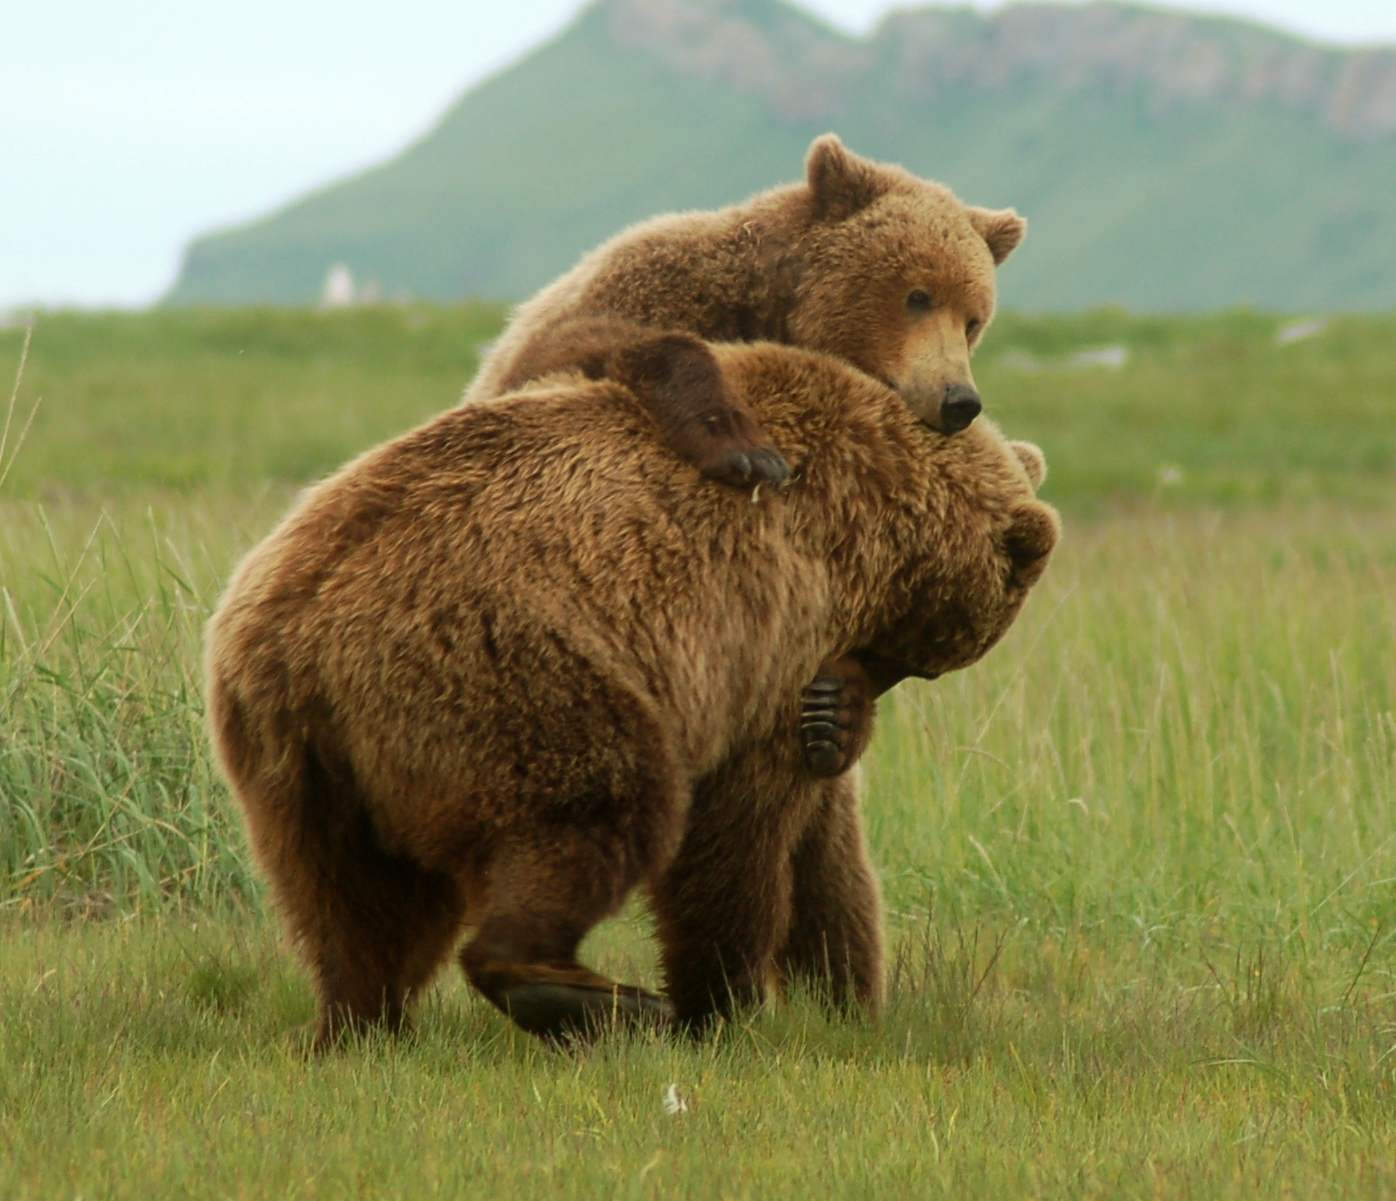 All About Animal Wildlife: Grizzly Bear Images-Photos and ...